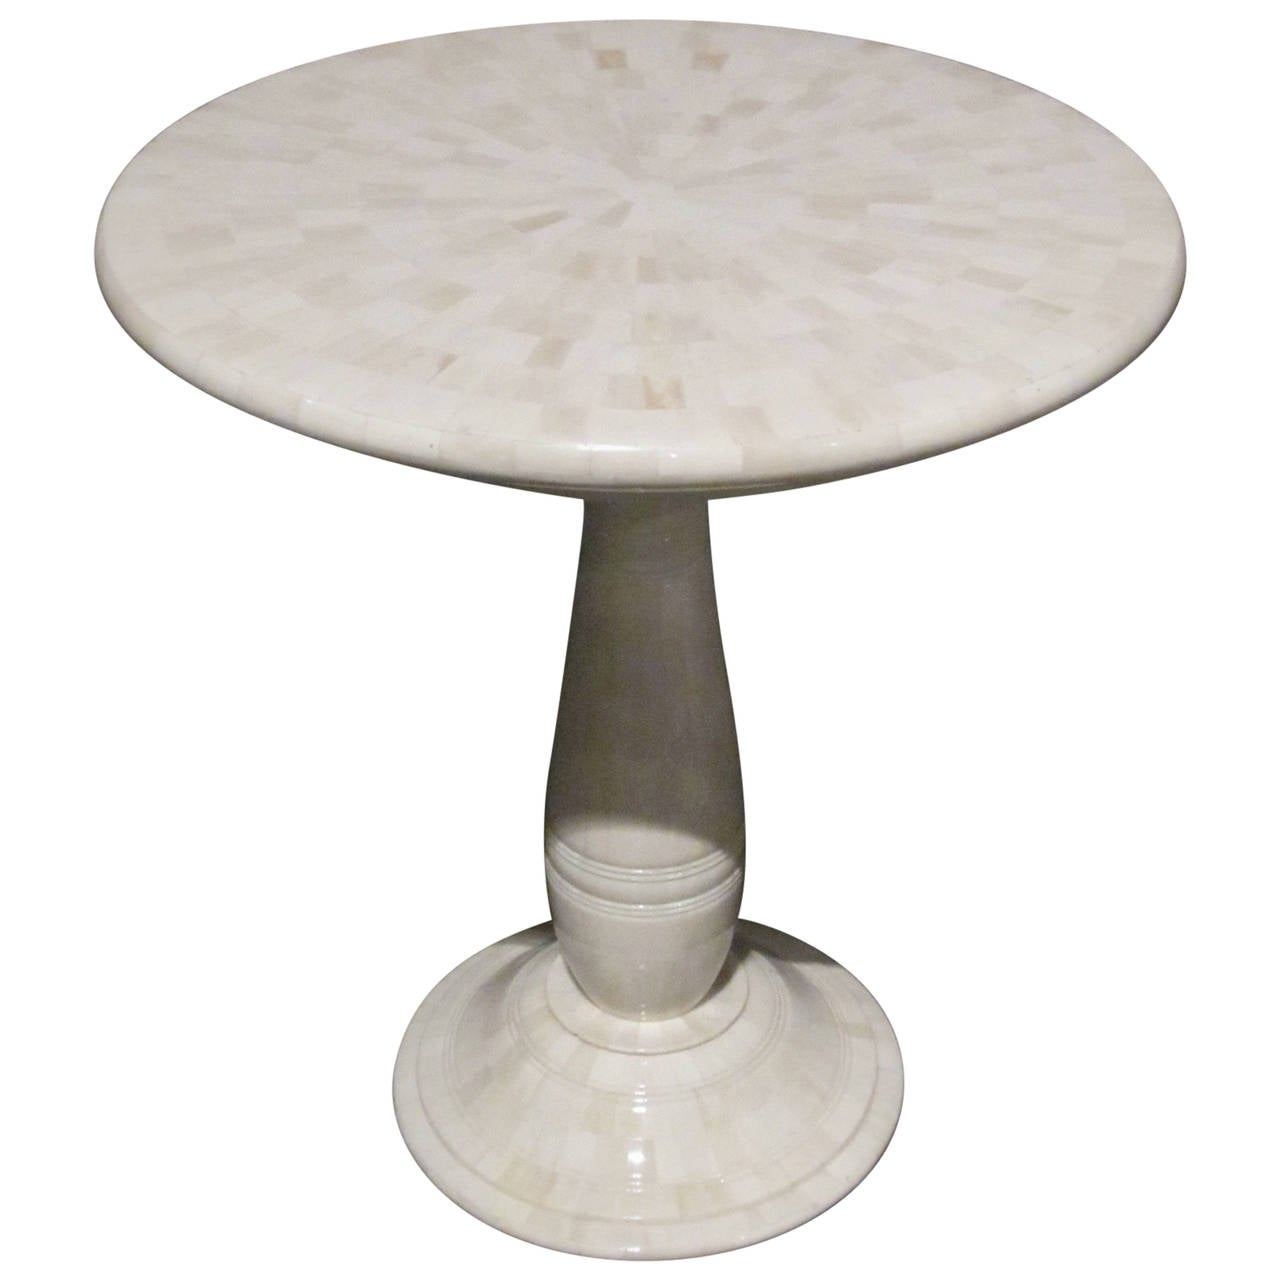 contemporary faux bone cocktail table at 1stdibs. Black Bedroom Furniture Sets. Home Design Ideas